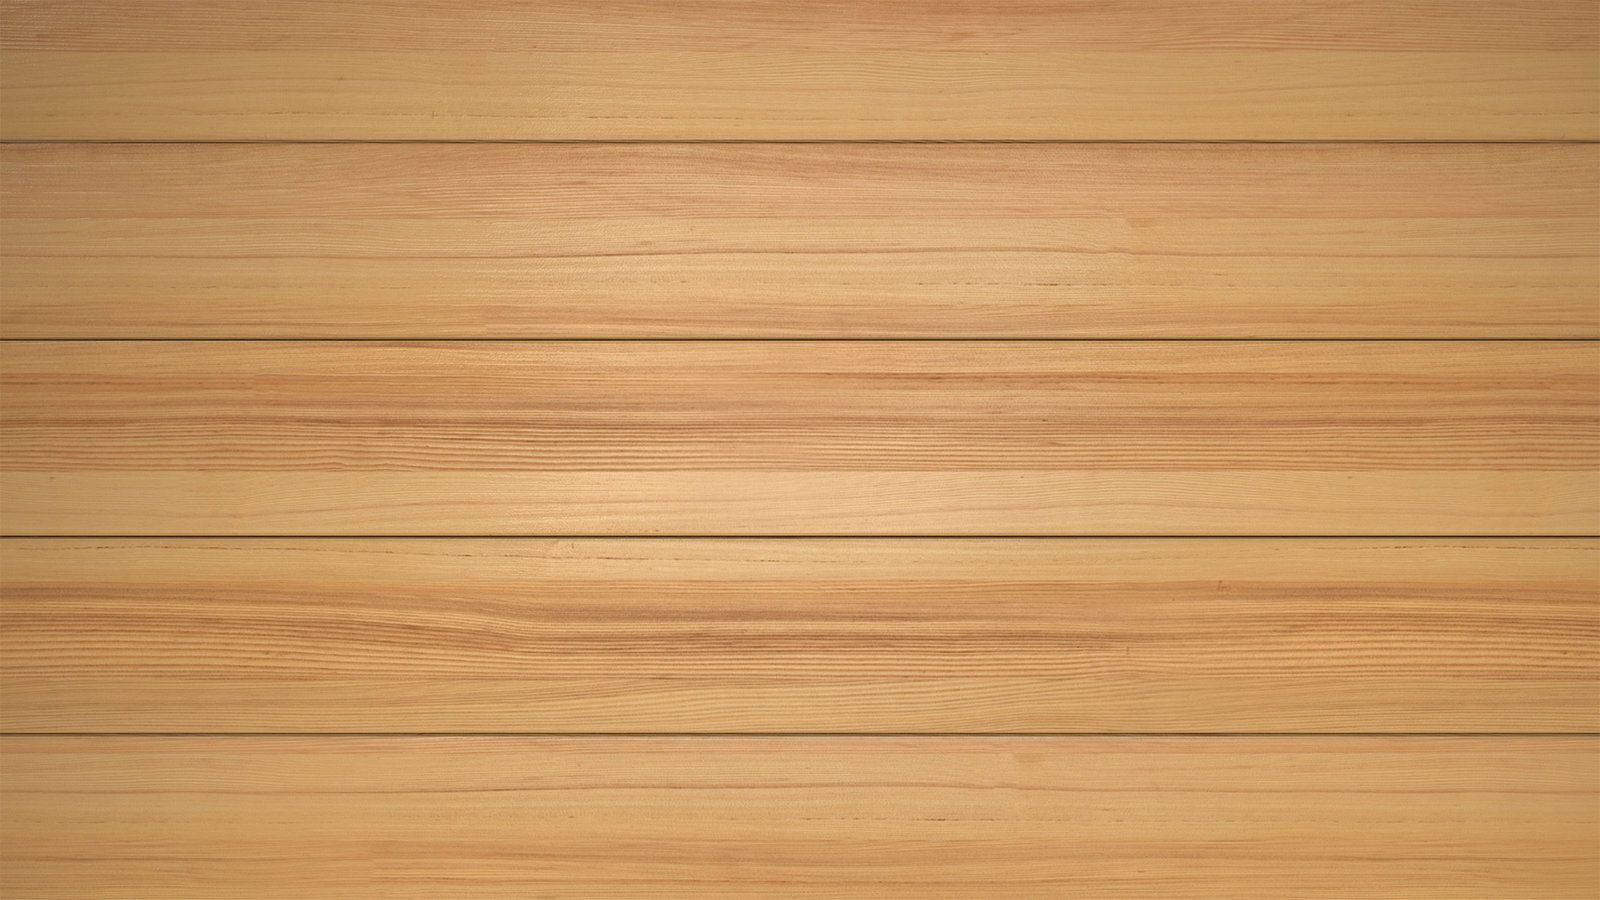 Wood Lap Siding Texture Seamless Google Search